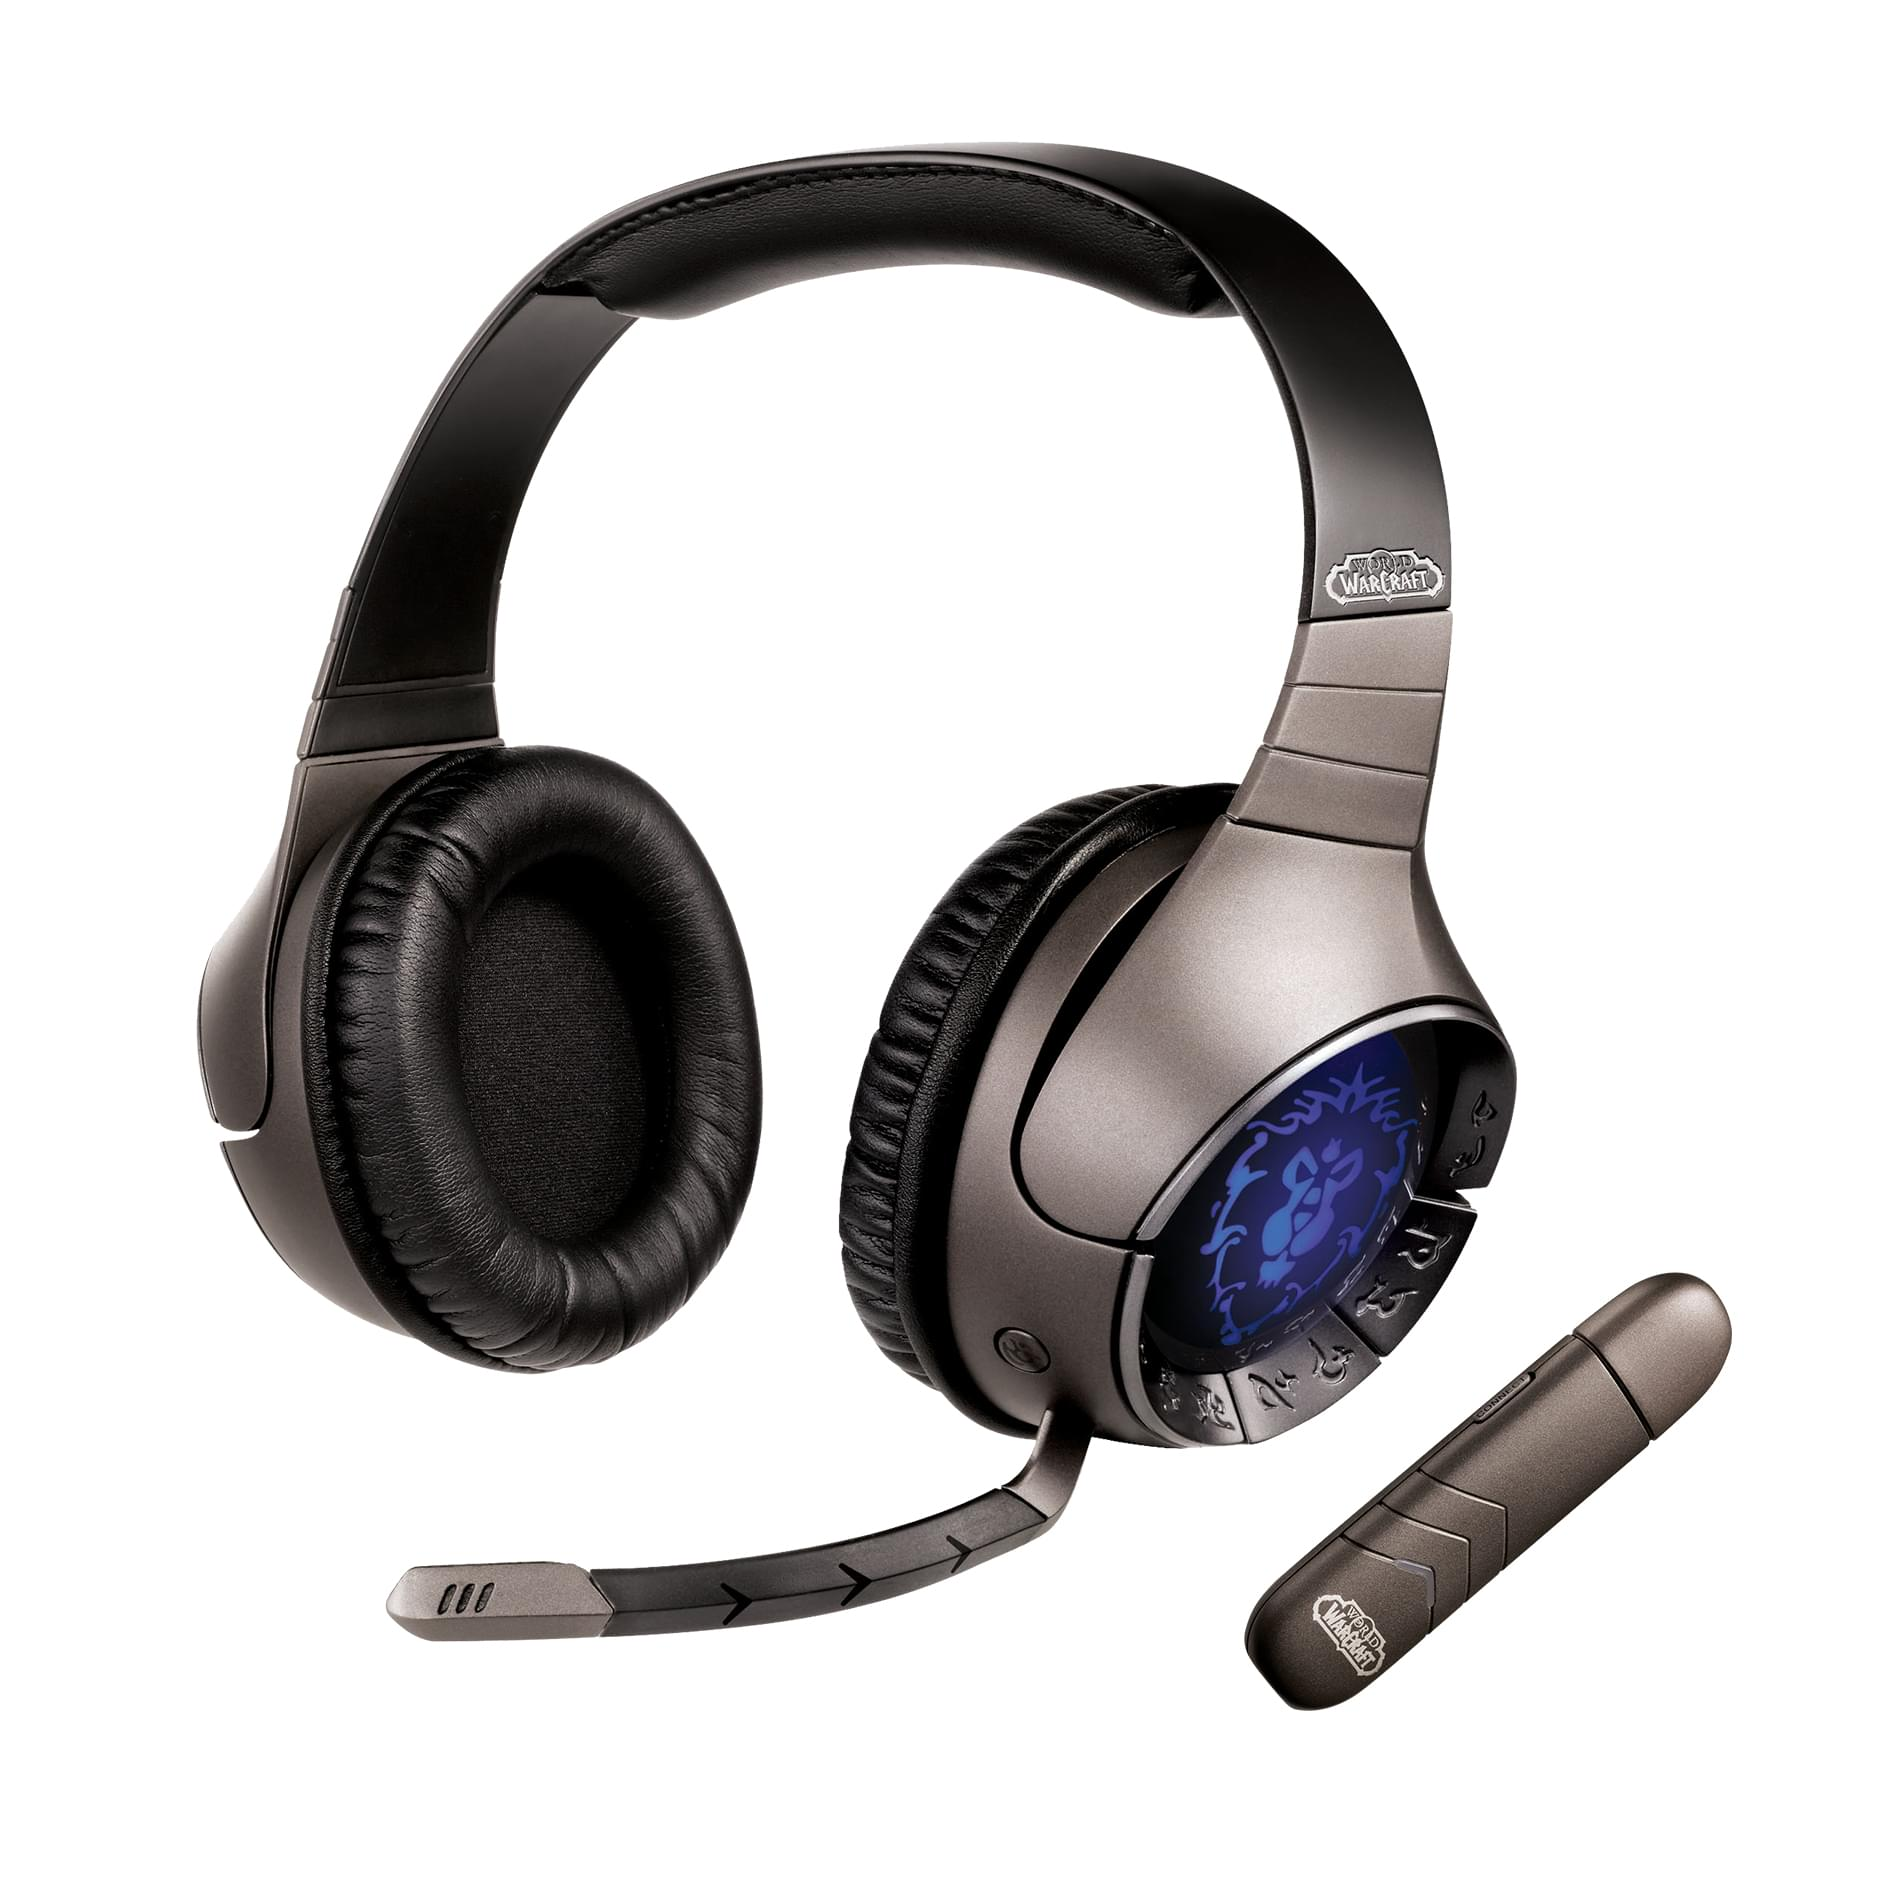 Creative World of Warcraft Wireless Gaming Headset (70GH011000001) - Achat / Vente Micro-casque sur Cybertek.fr - 0